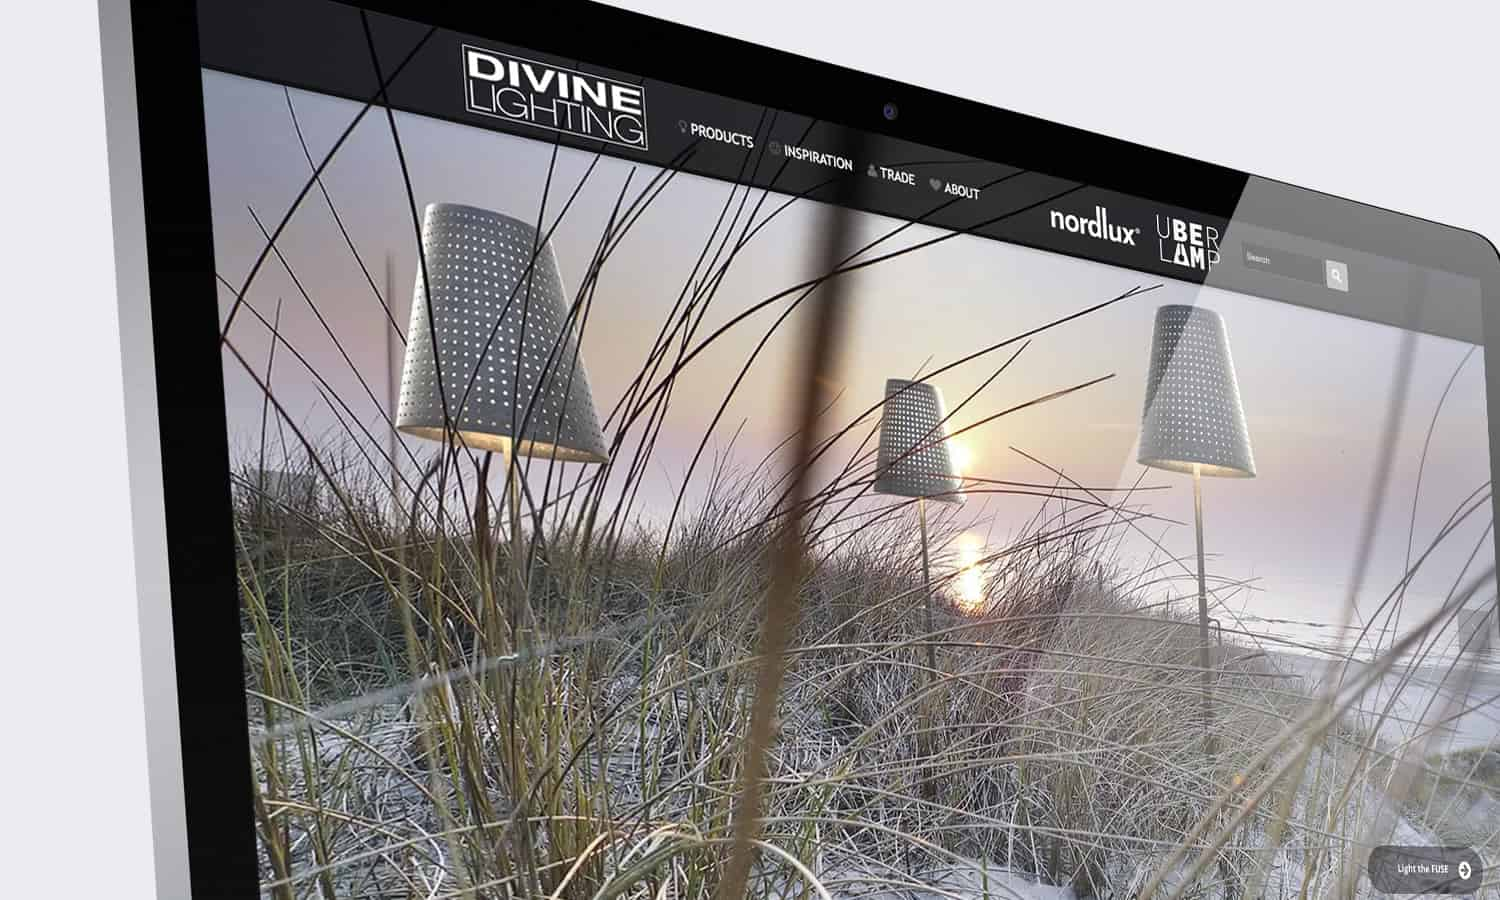 Divine Lighting (Nordlux UK)